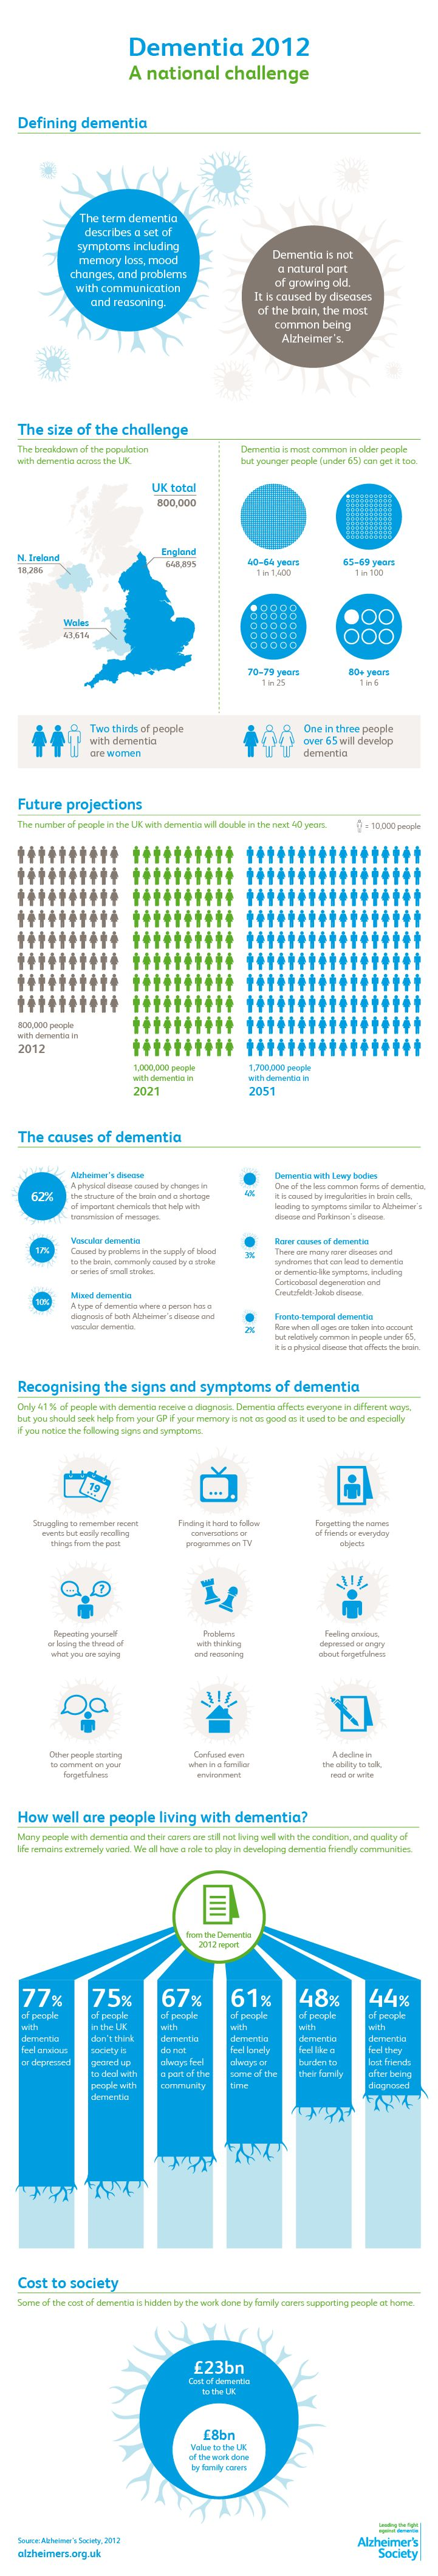 U.S. Dementia Rates Are Dropping Even as Population Ages ...